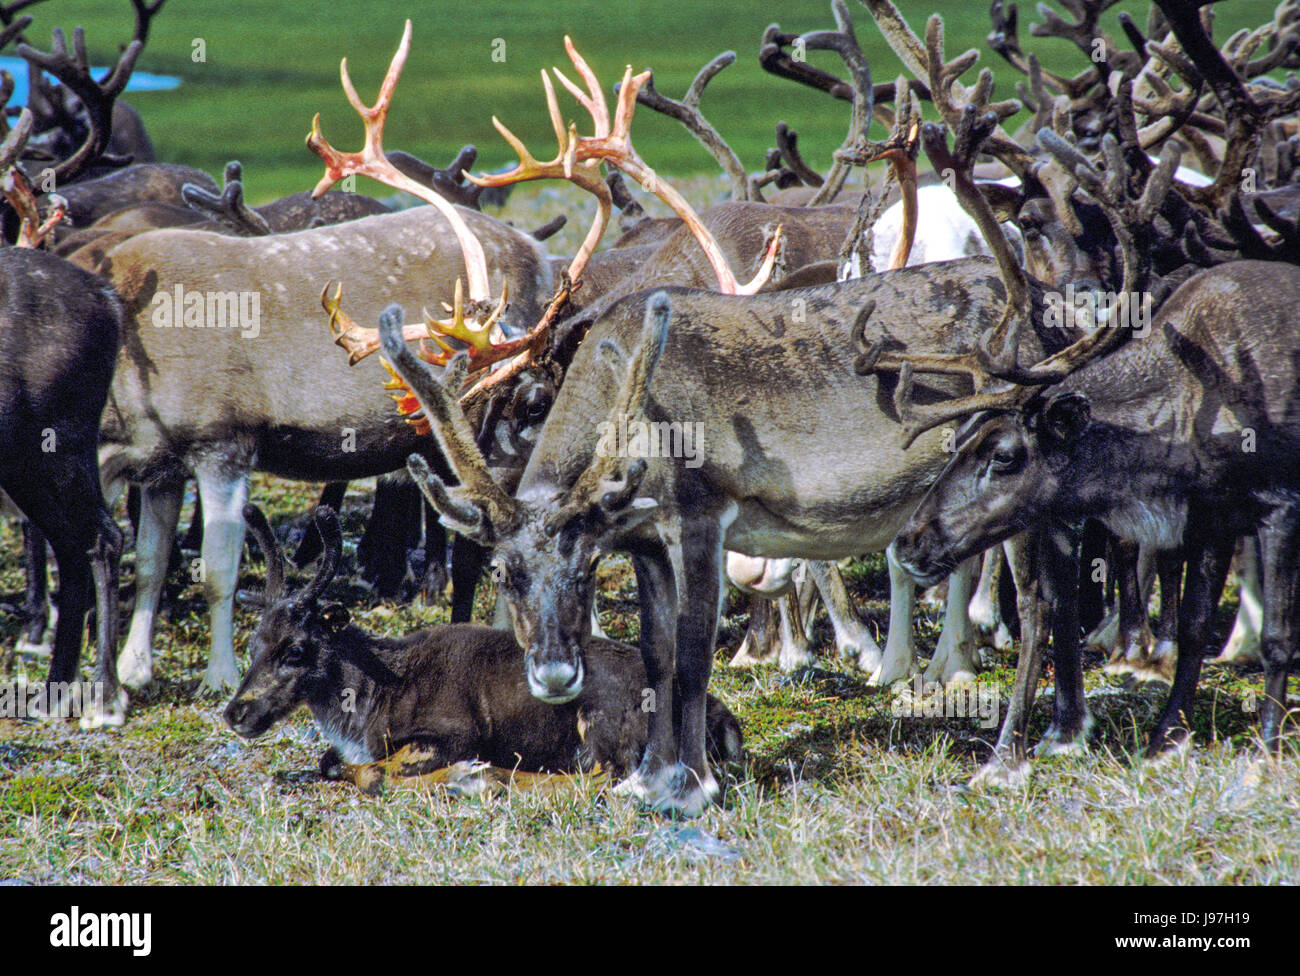 Nomadic Chukchi reindeer on the Chukchi or Chukotka Peninsula, in the Russian Far East. Stock Photo